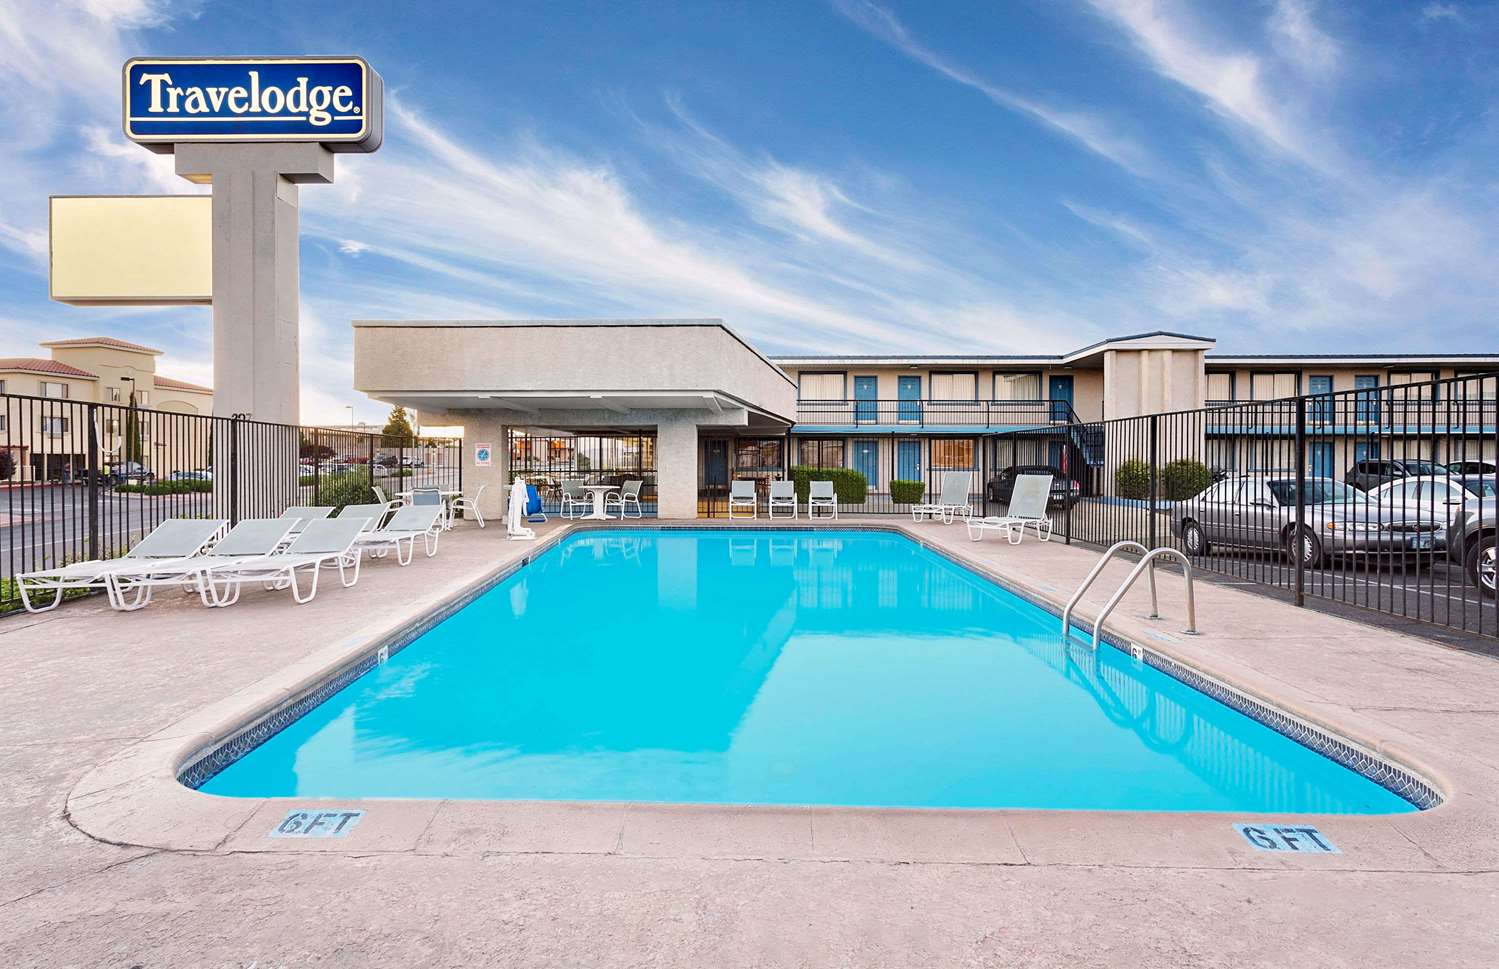 Travelodge Page Az See Discounts